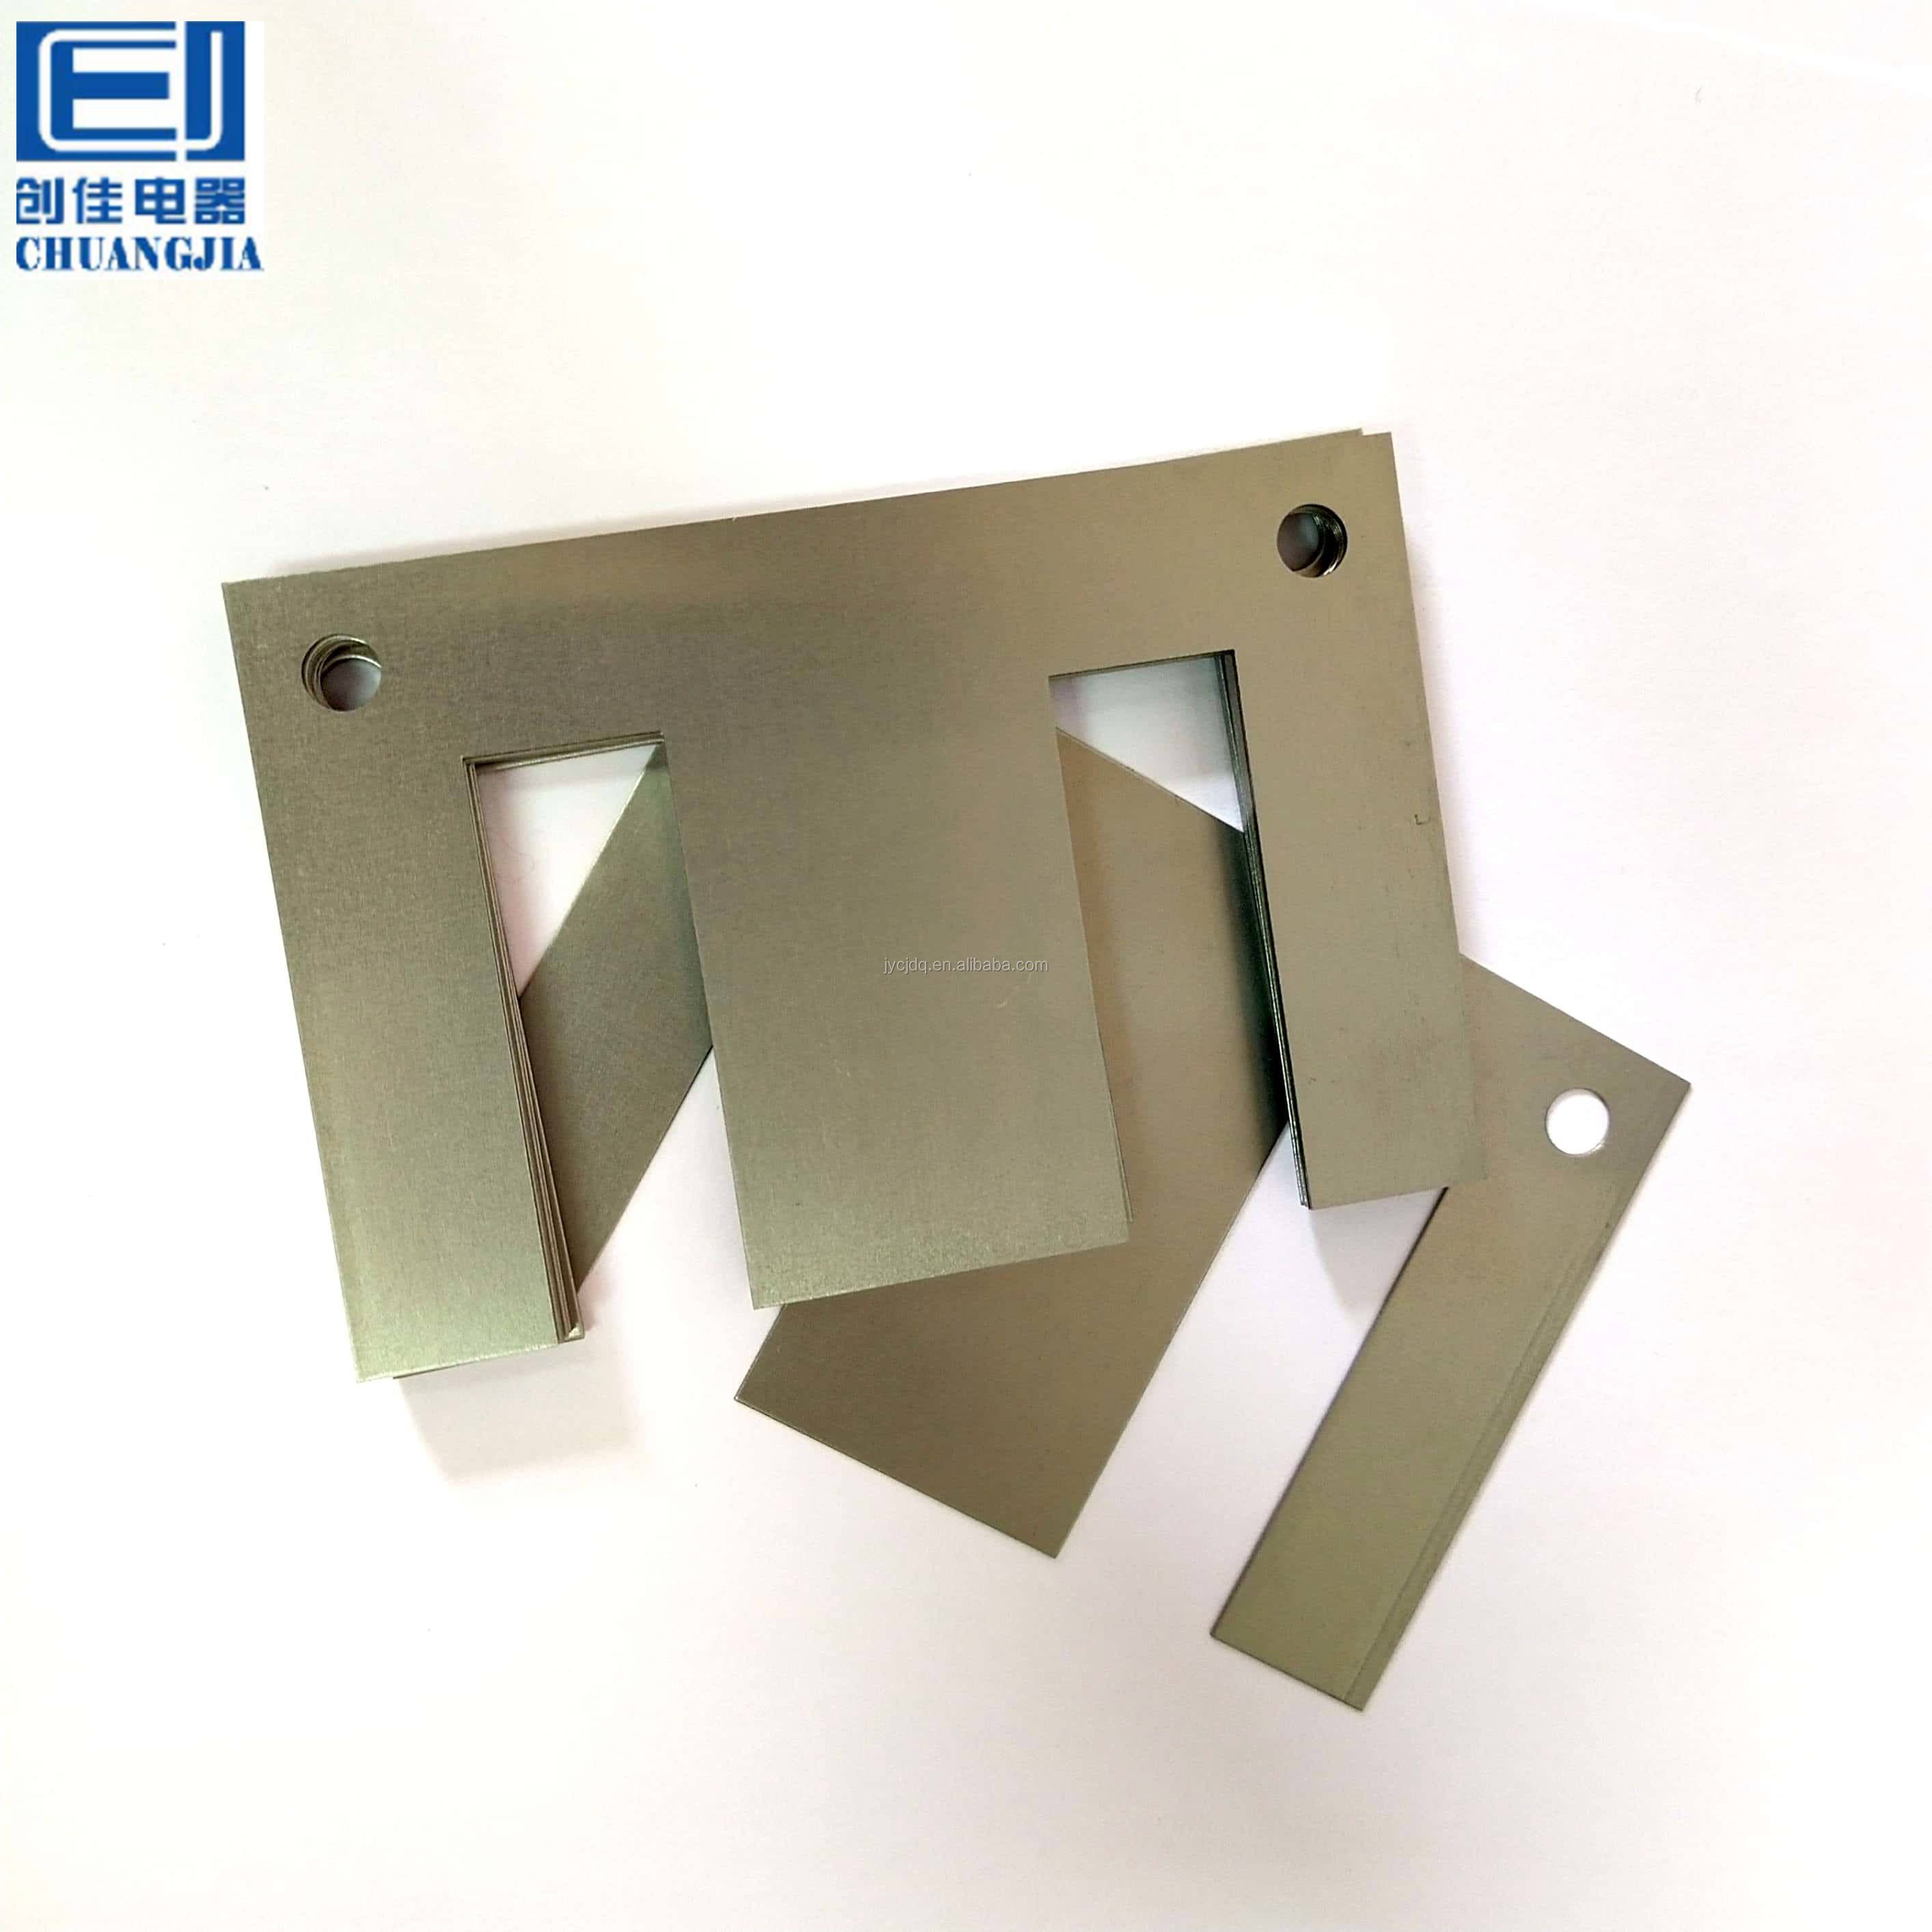 Chuangjia Cold Rolled Transformer Silicon Steel Lamination EI 144